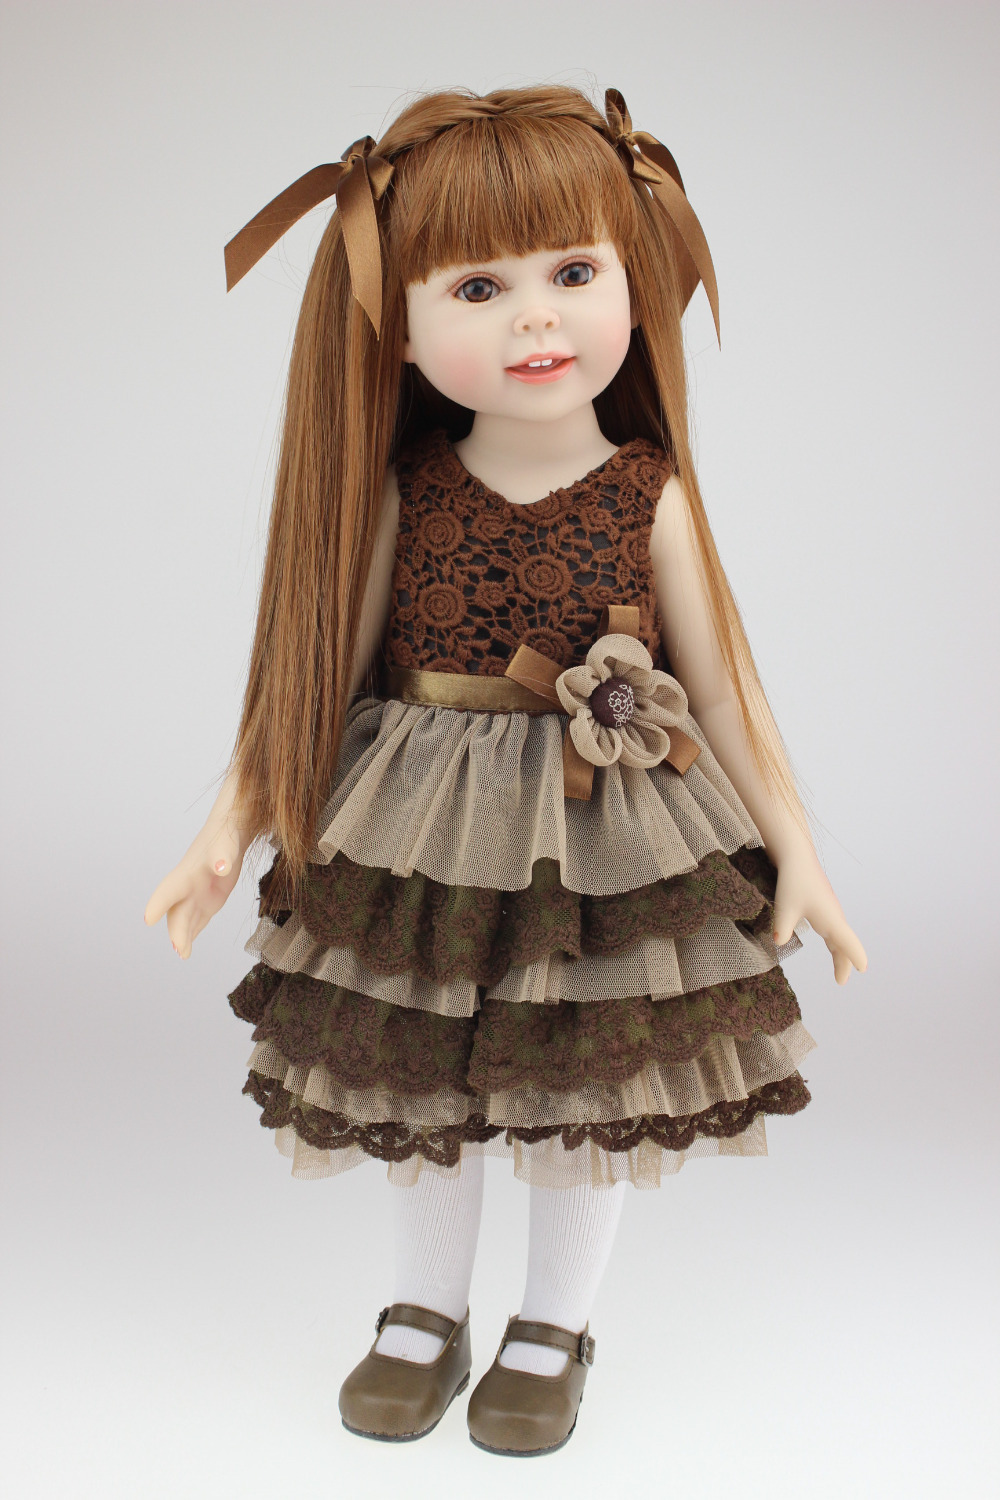 Brown Long Straight Hair American Girl Dolls For Sale 18